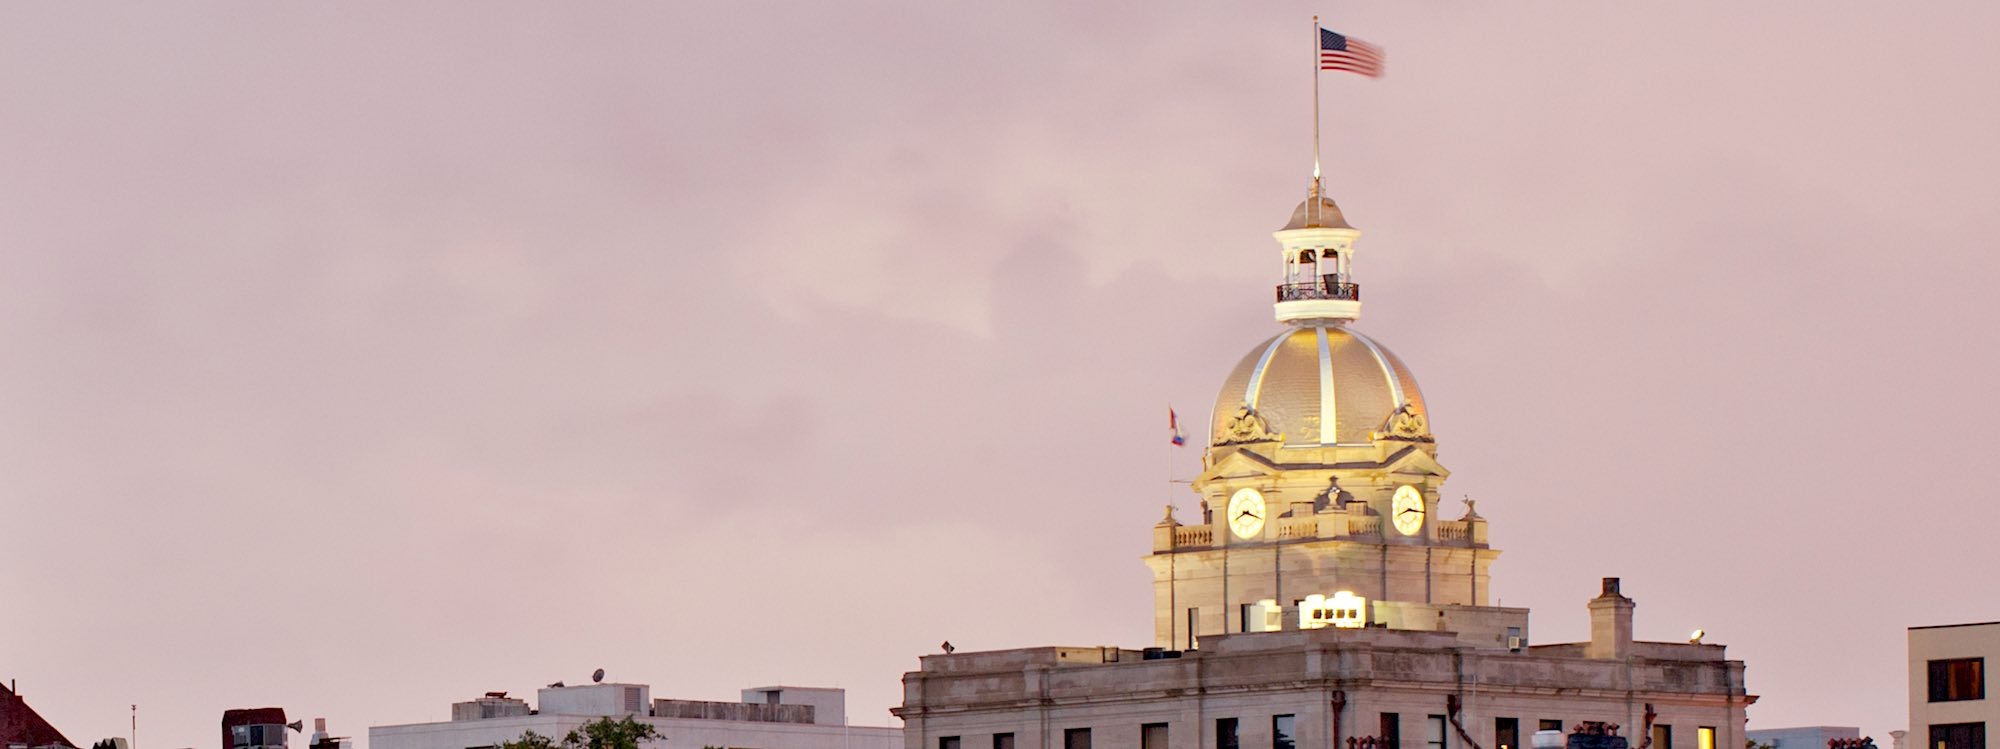 Savannah, GA's City Hall dome stands against the pink sky at sunset.